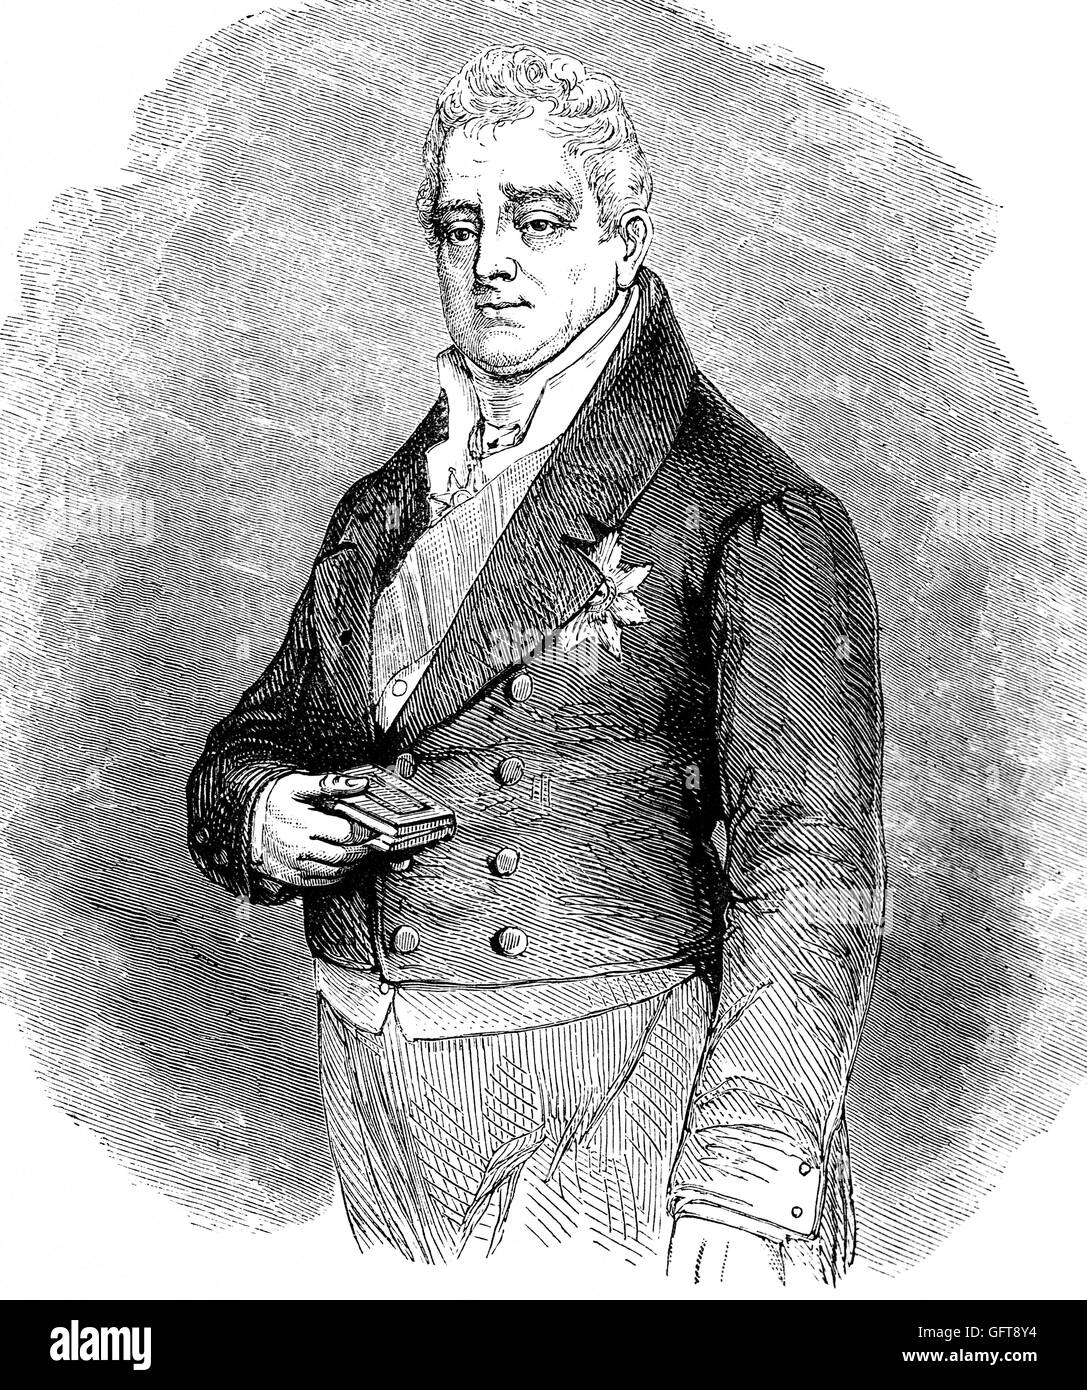 William IV (1765 – 1837) was King of the United Kingdom of Great Britain and Ireland and King of Hanover from 26 - Stock Image